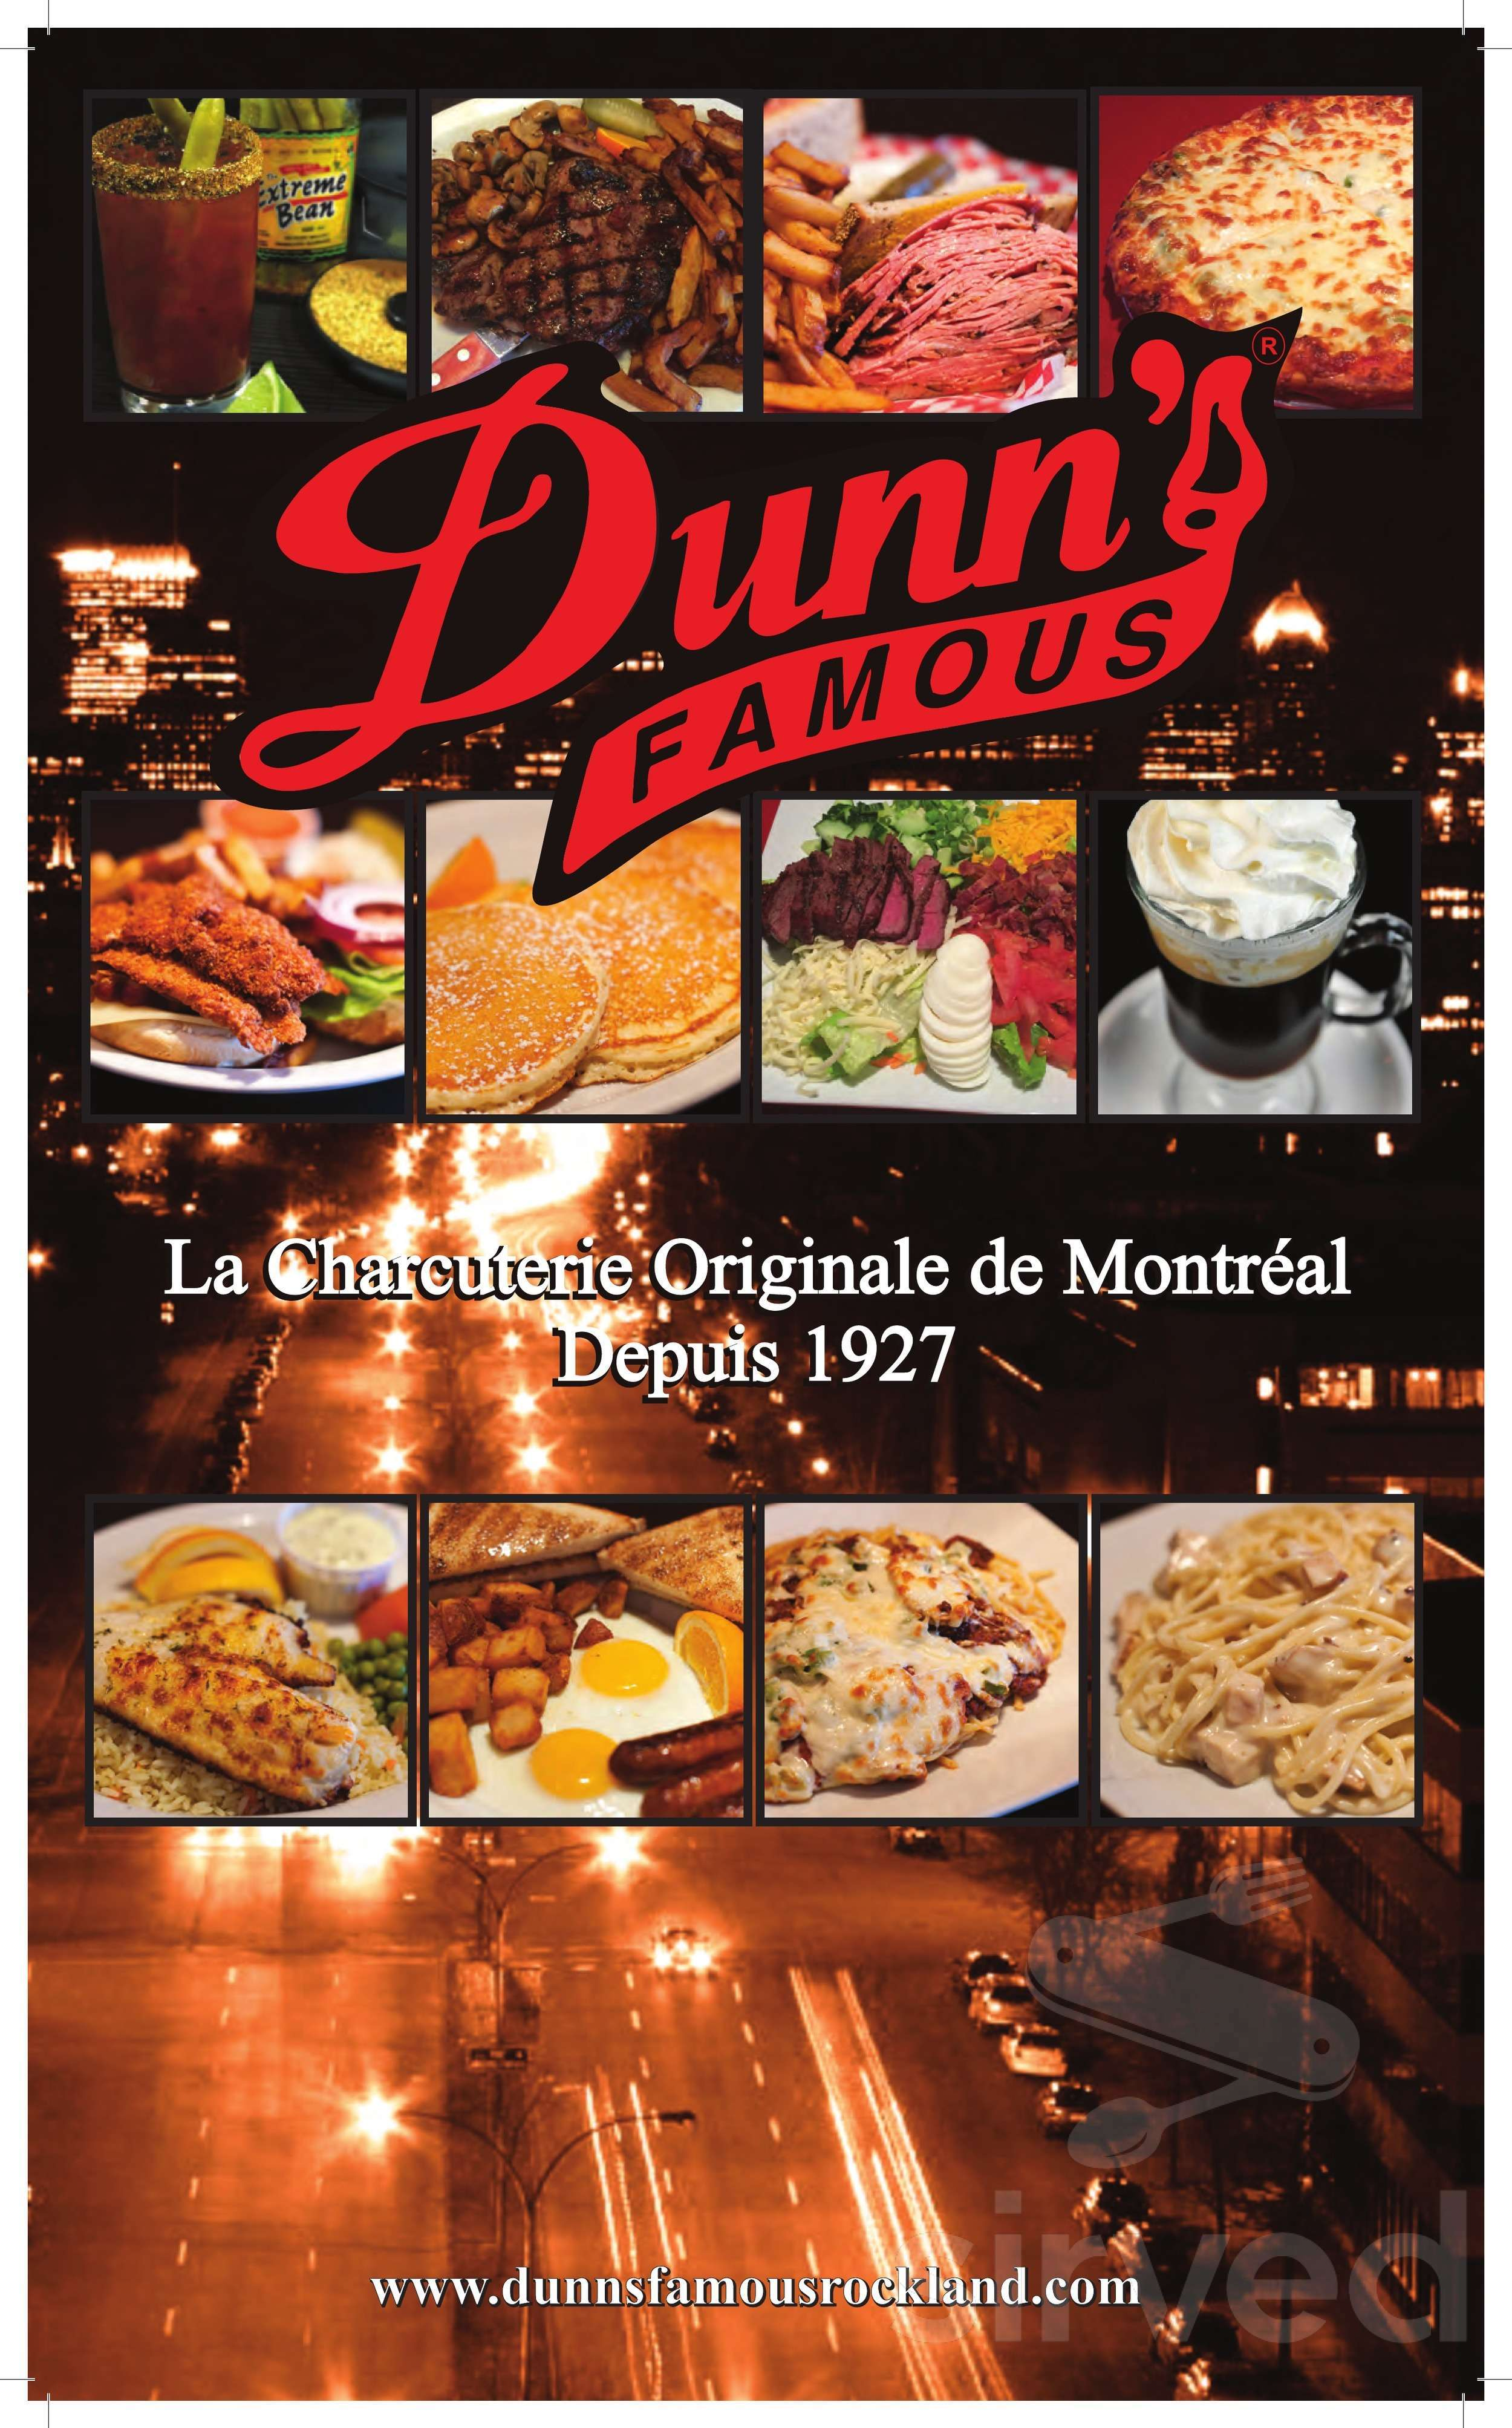 Dunn S Famous Menu In Rockland Ontario Canada